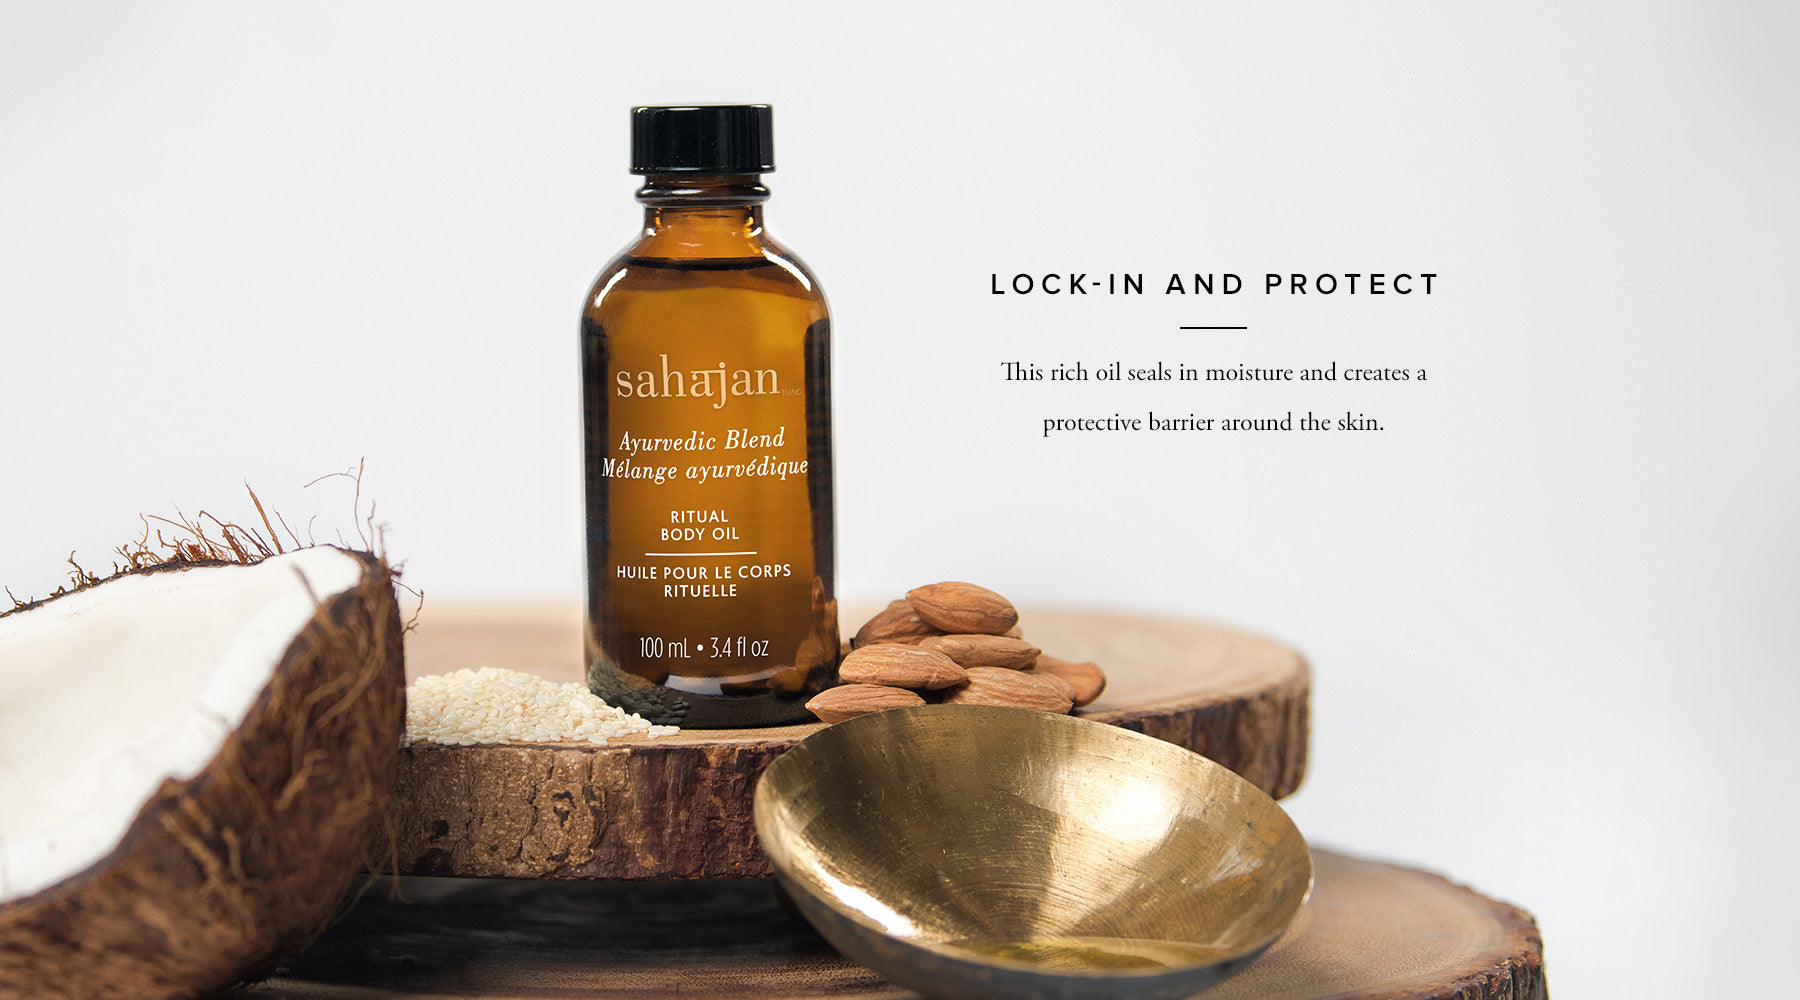 Lock-in and Protect-   This rich oil seals in moisture and creates a protective barrier around the skin